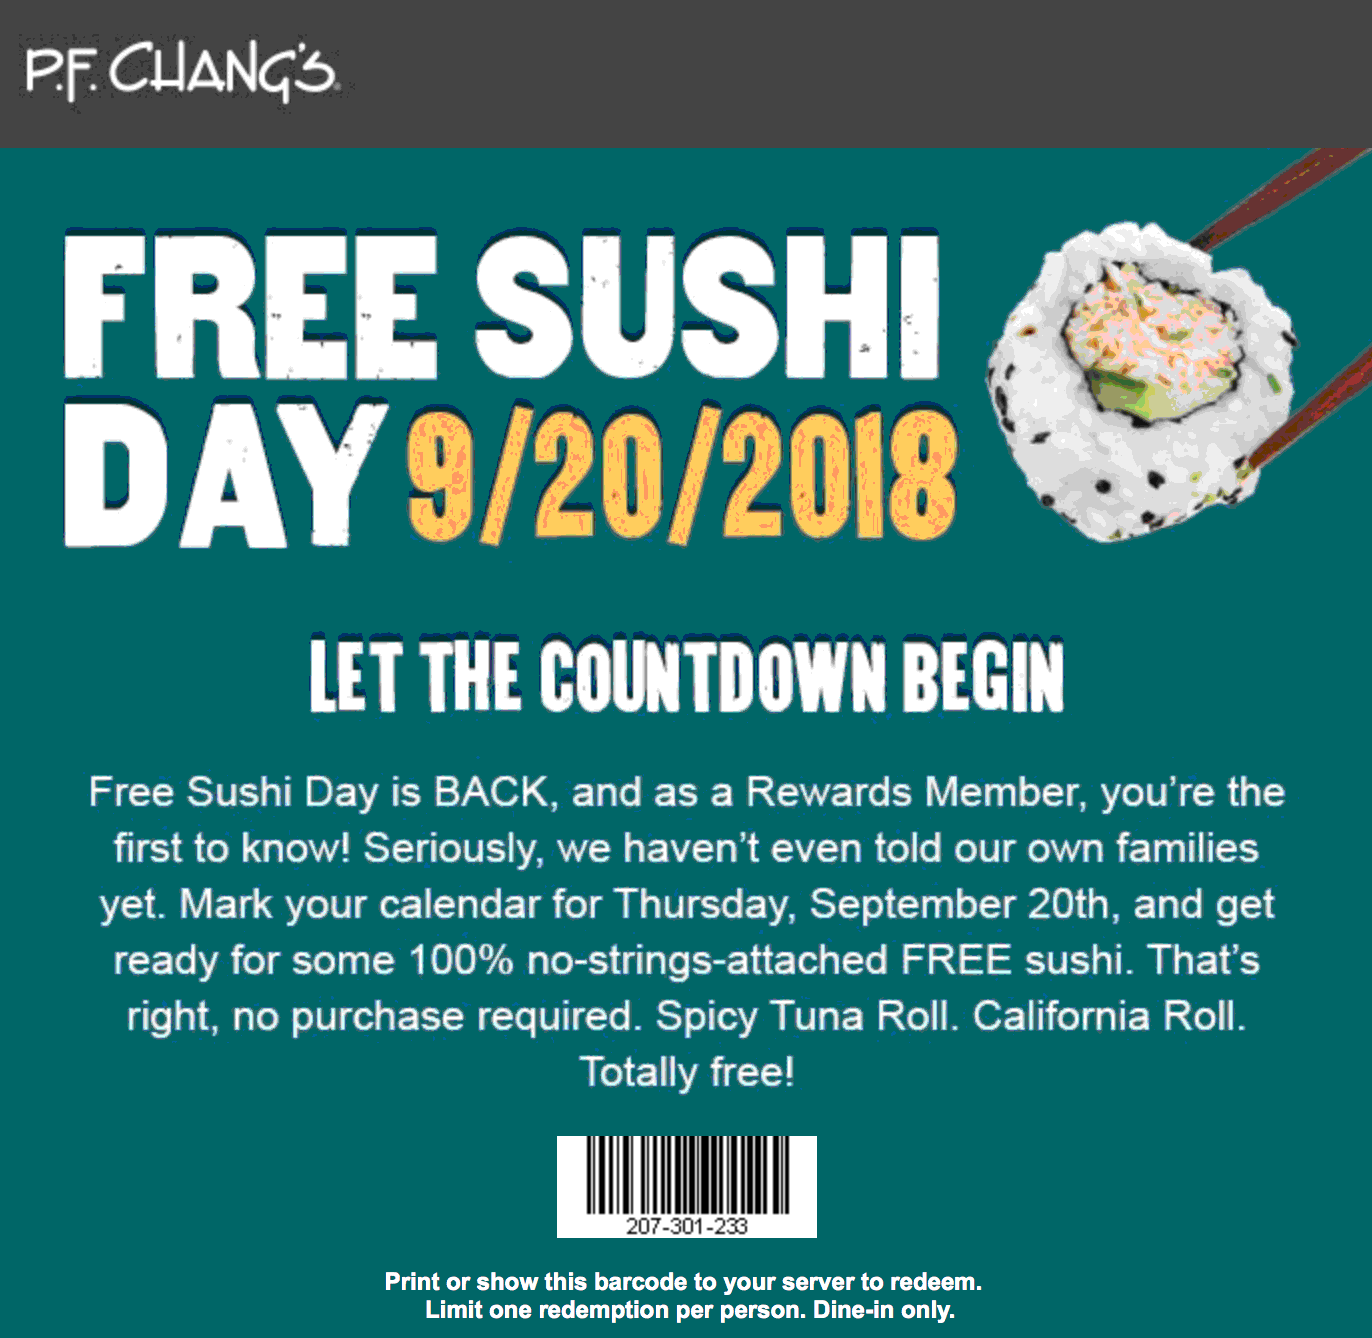 P.F. Changs Coupon July 2019 Free sushi day Thursday at P.F. Changs restaurants